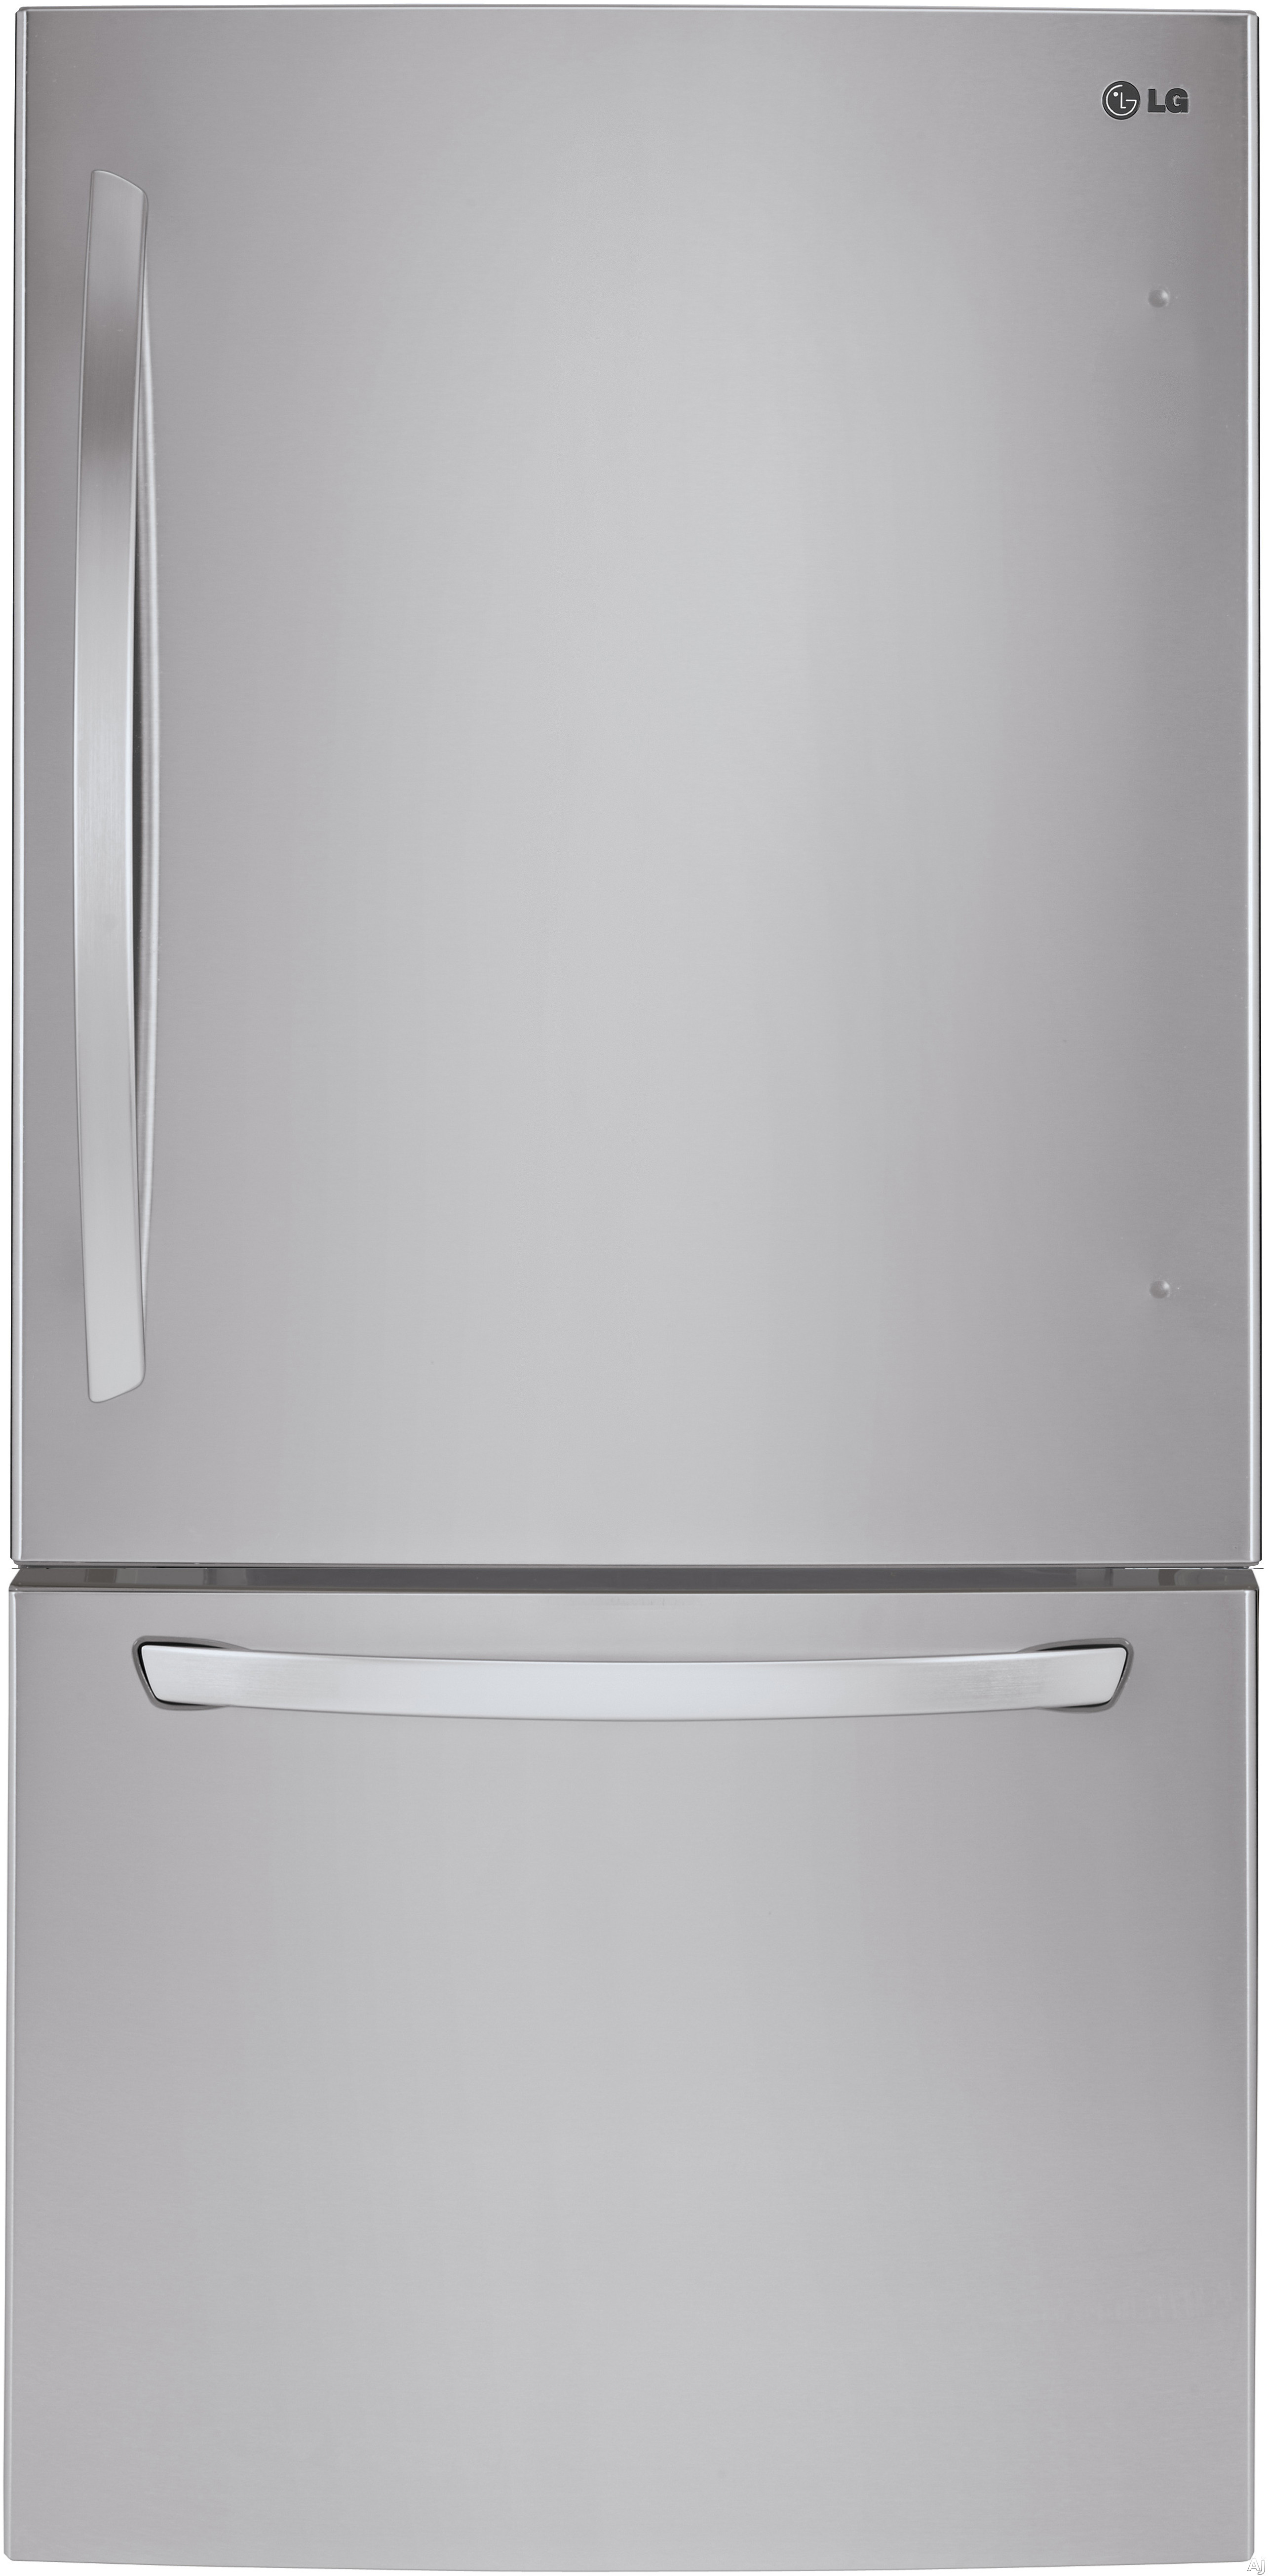 LG LDCS24223 33 Inch Bottom Freezer Refrigerator with Linear Compressor, Ice Maker, SpillProtector™ Tempered Glass Shelves, Humidity-Controlled Crisper Drawers, Glide N' Serve™ Deli Drawer, SmartDiagnosis™, ENERGY STAR® and 24 cu. ft. Capacity